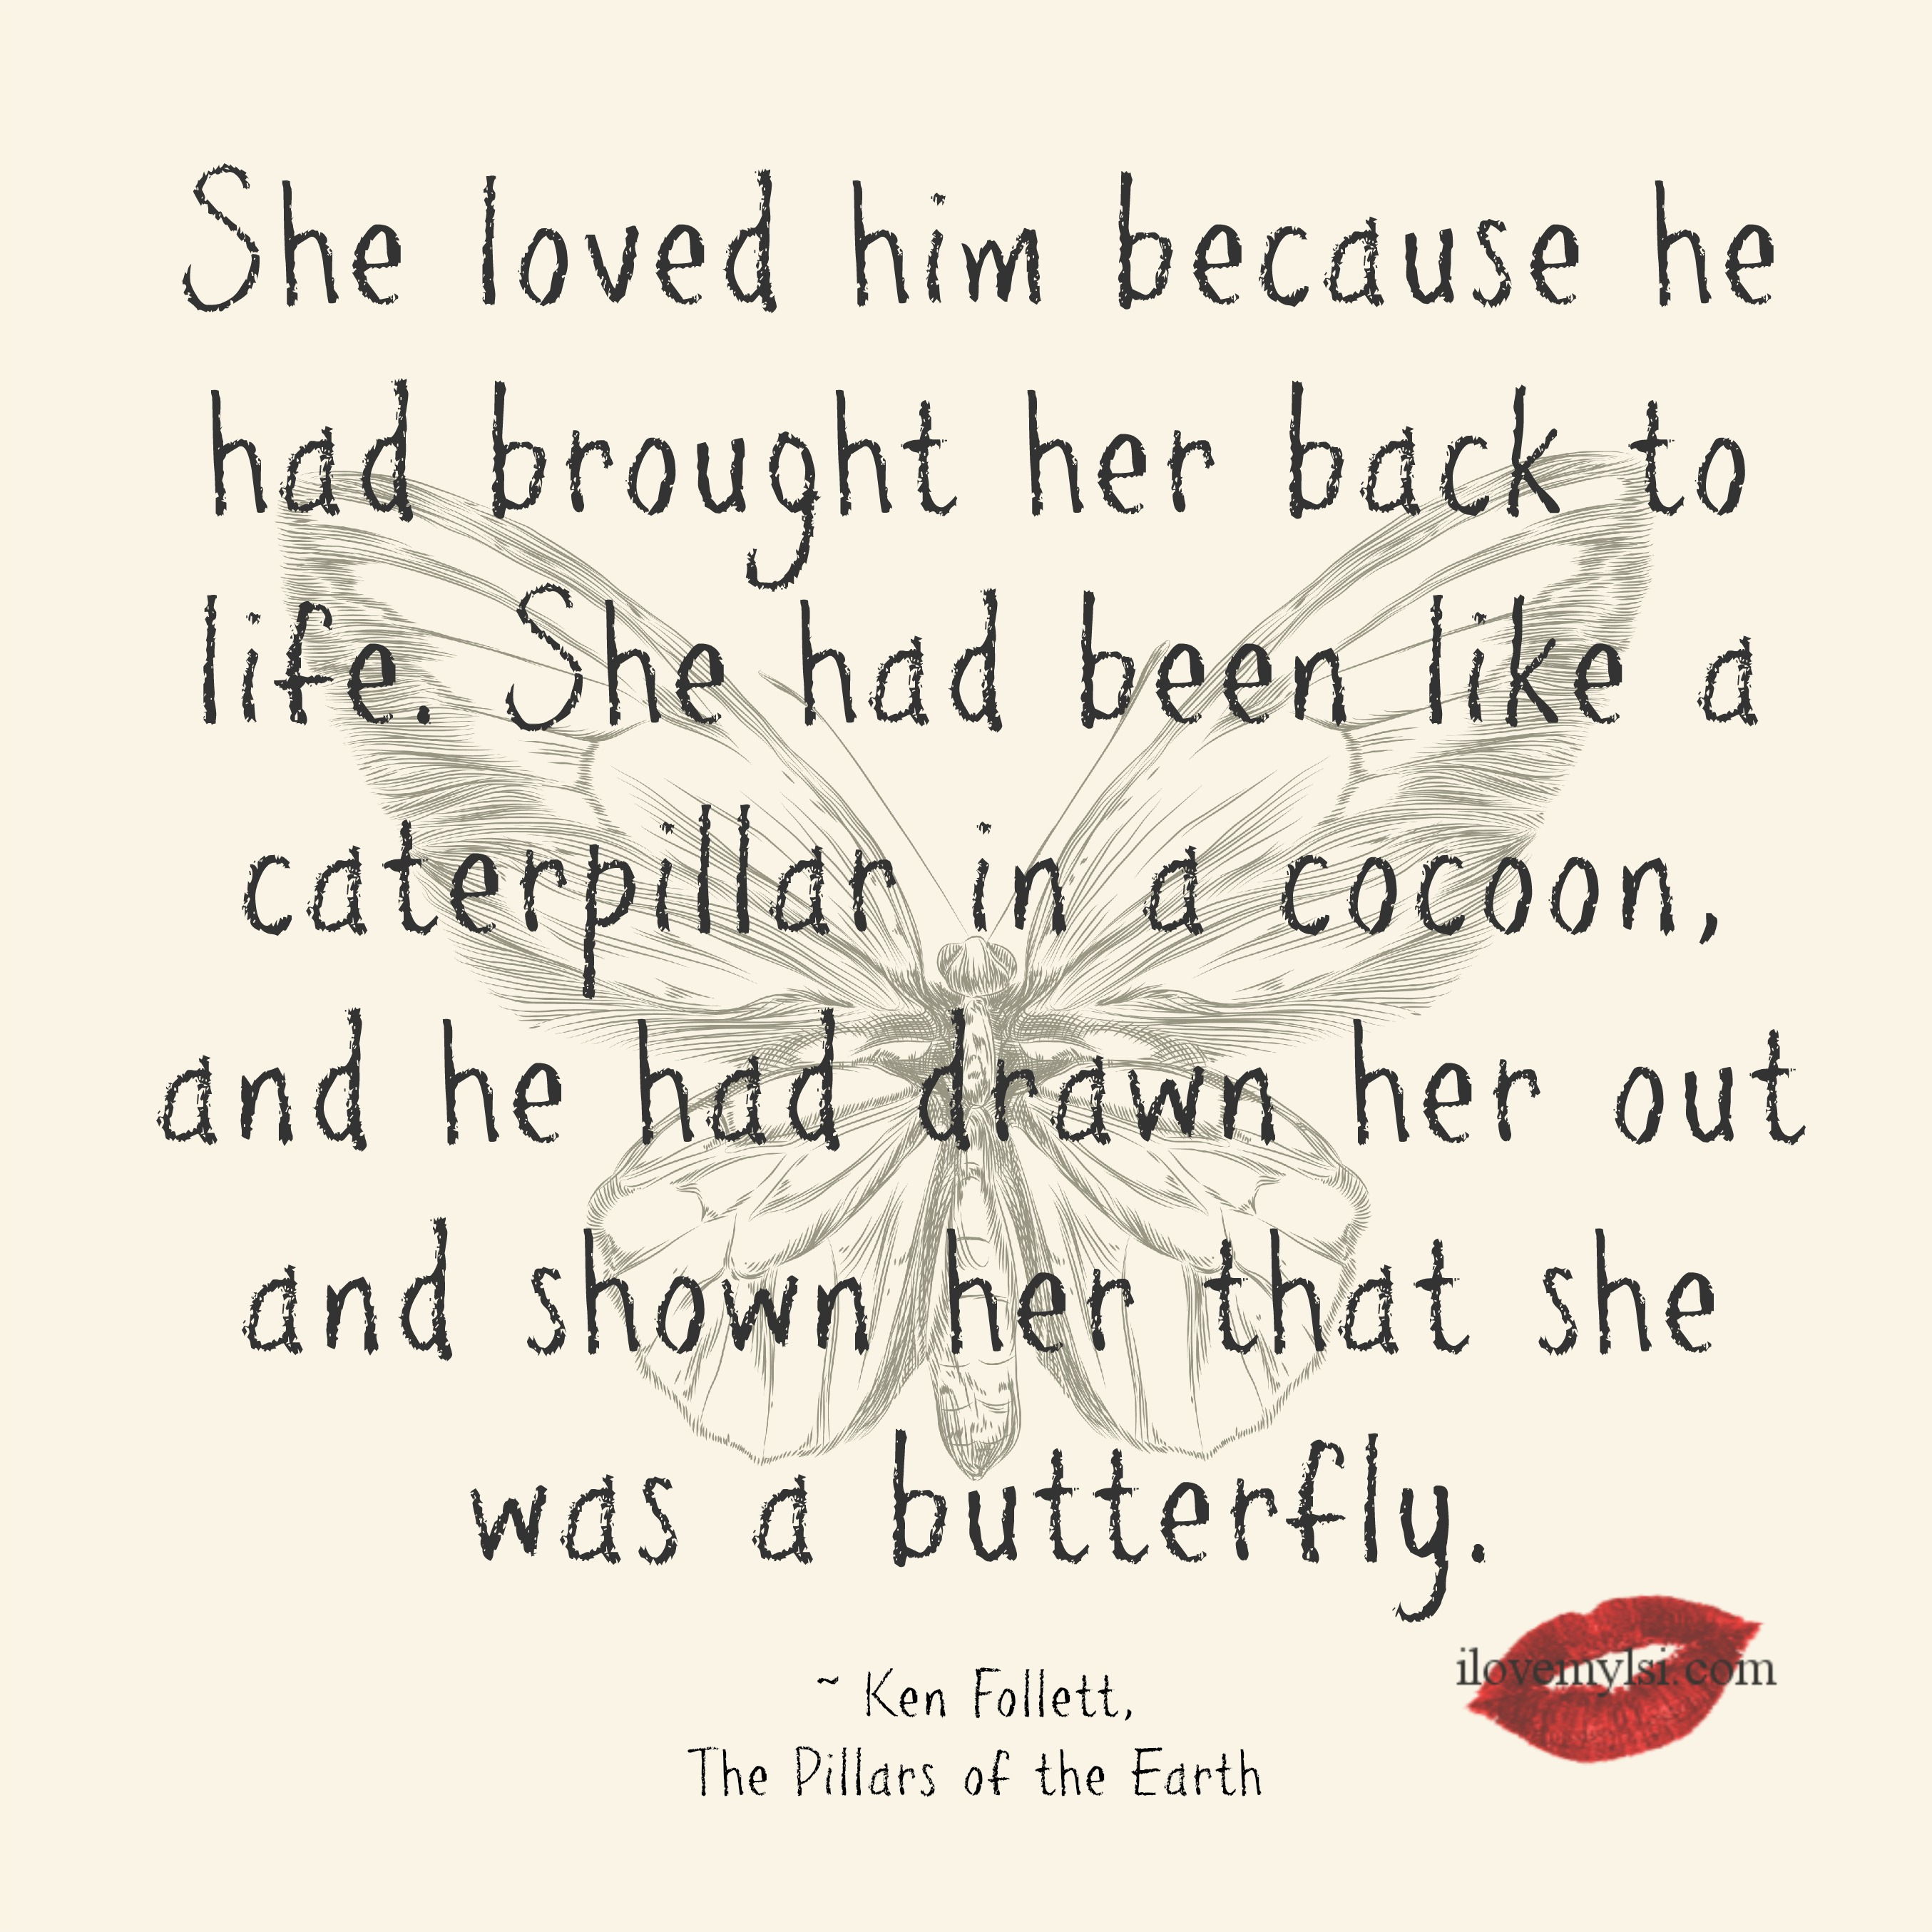 Quote Related To Life She Loved Him Because He Had Brought Her Back To Life I Love My Lsi